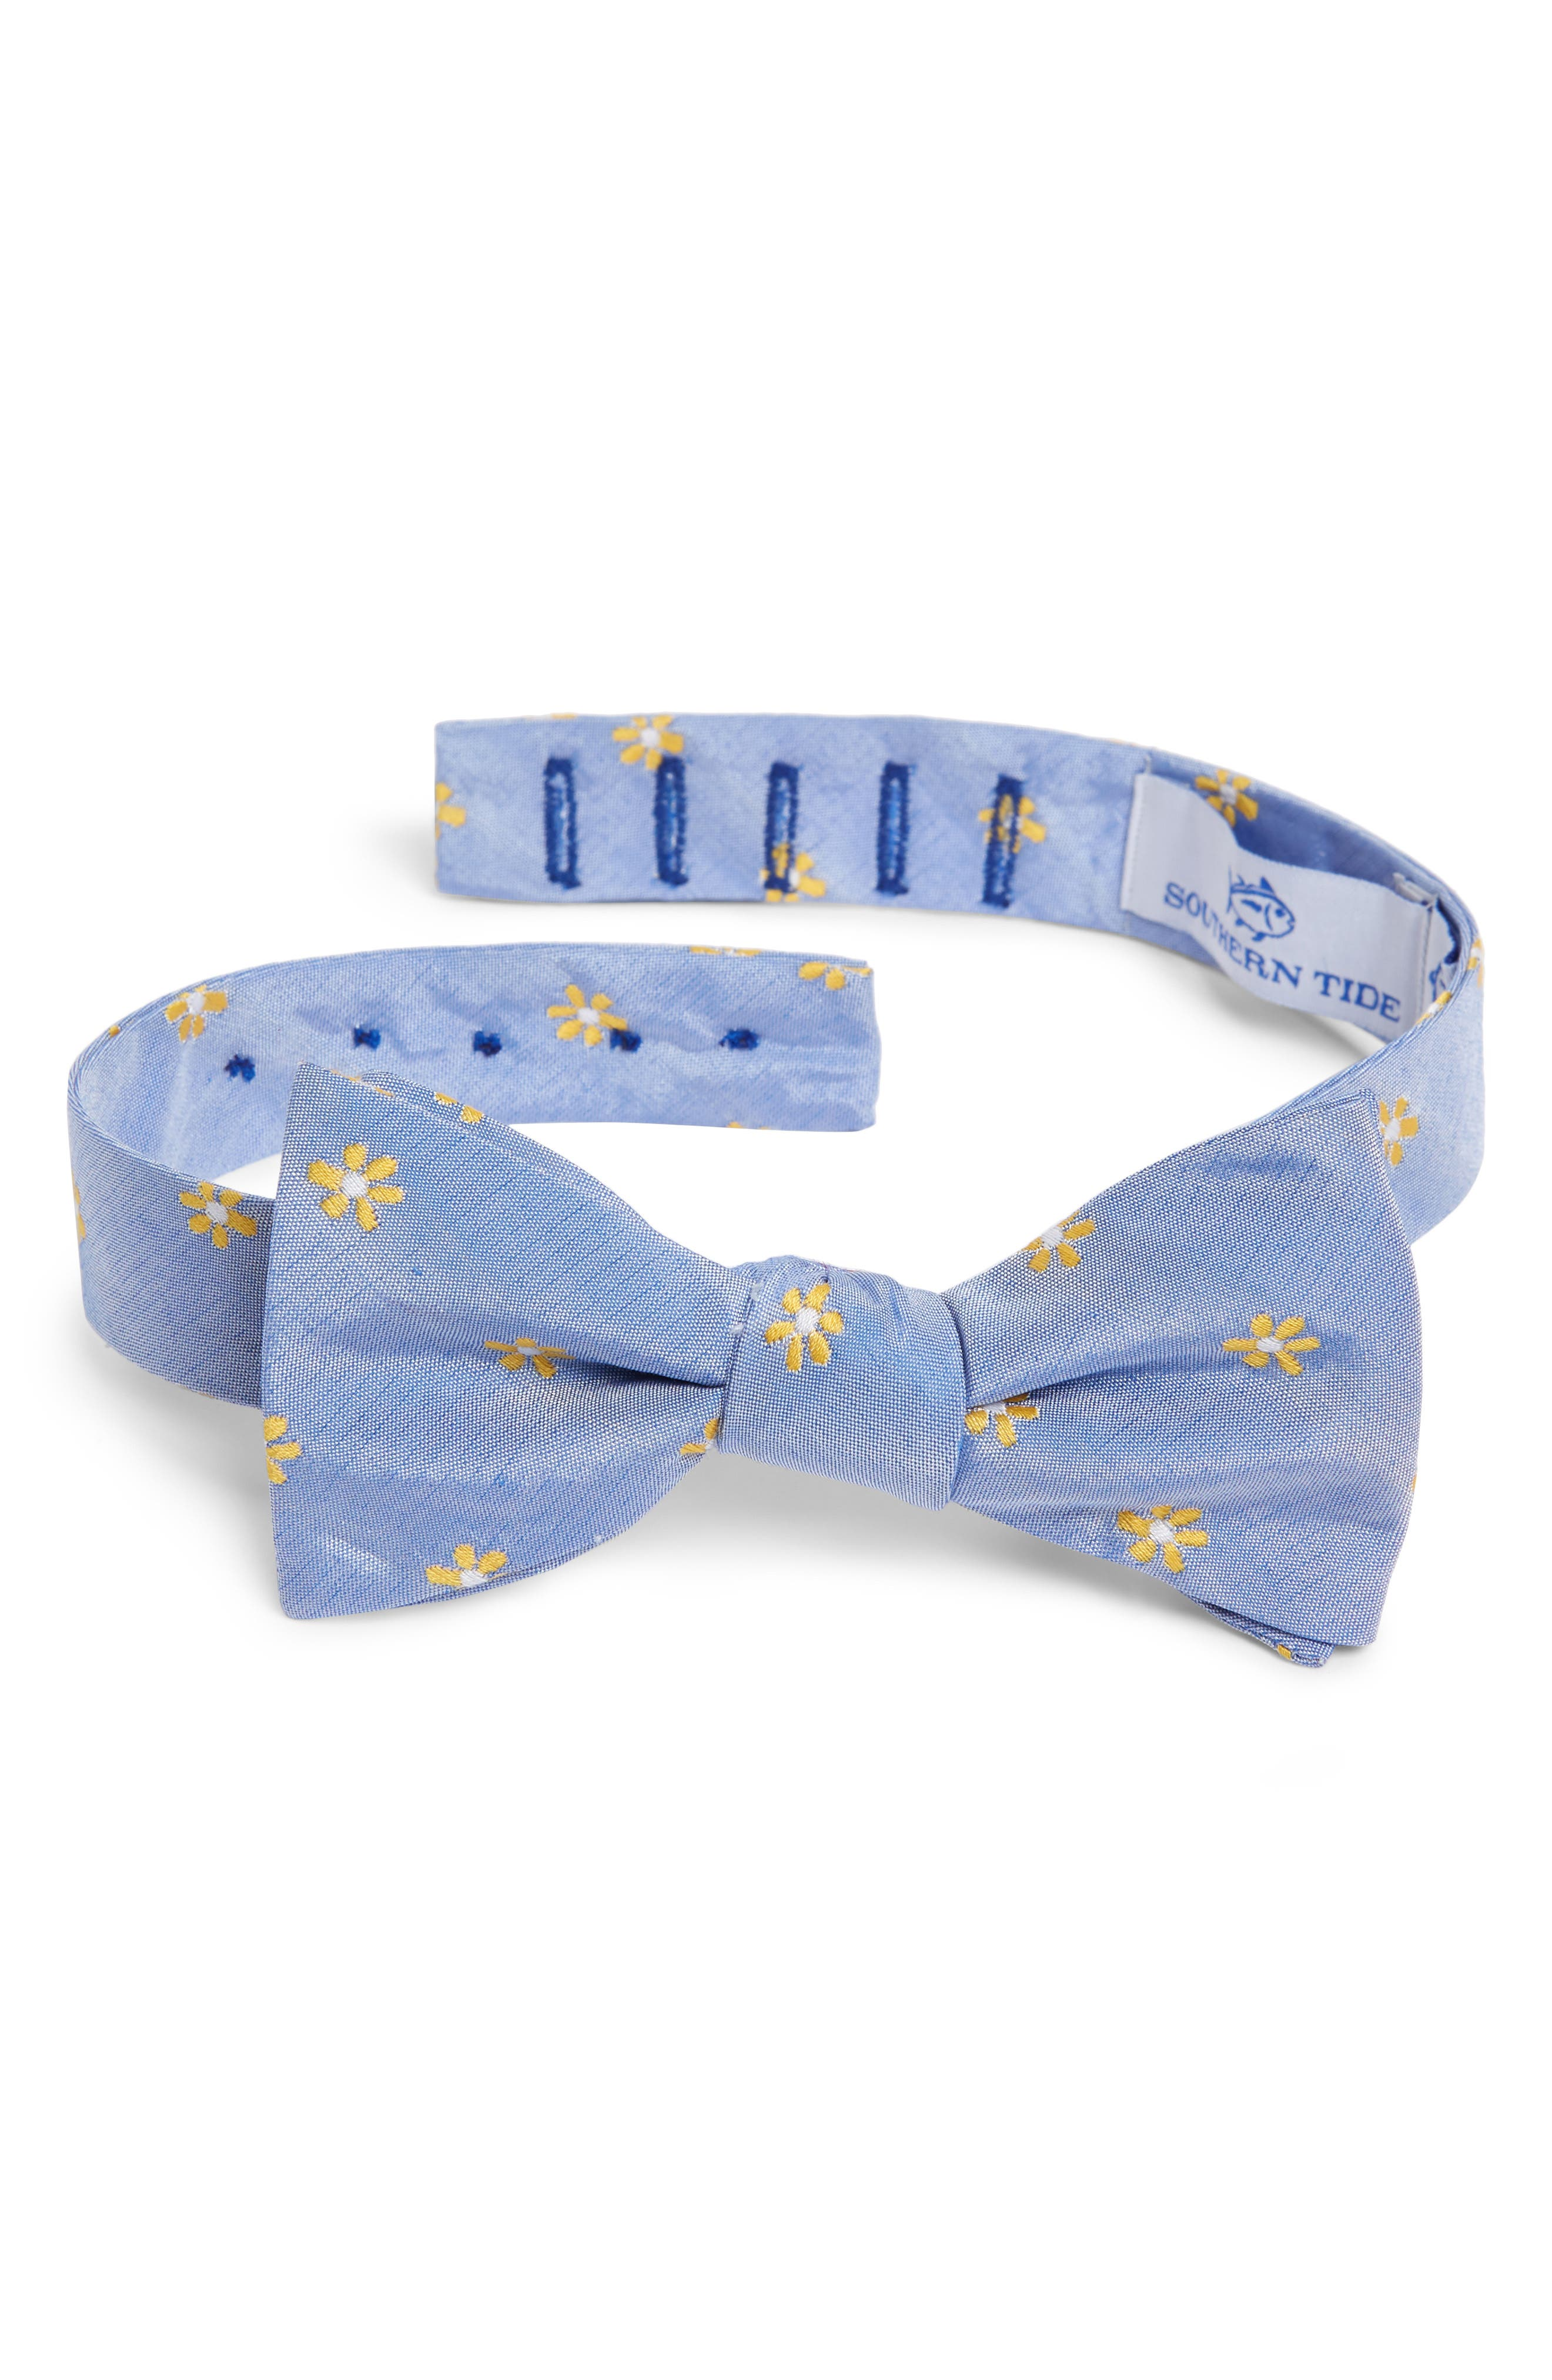 Cumberland Floral Cotton & Silk Bow Tie,                         Main,                         color, YELLOW/ BLUE